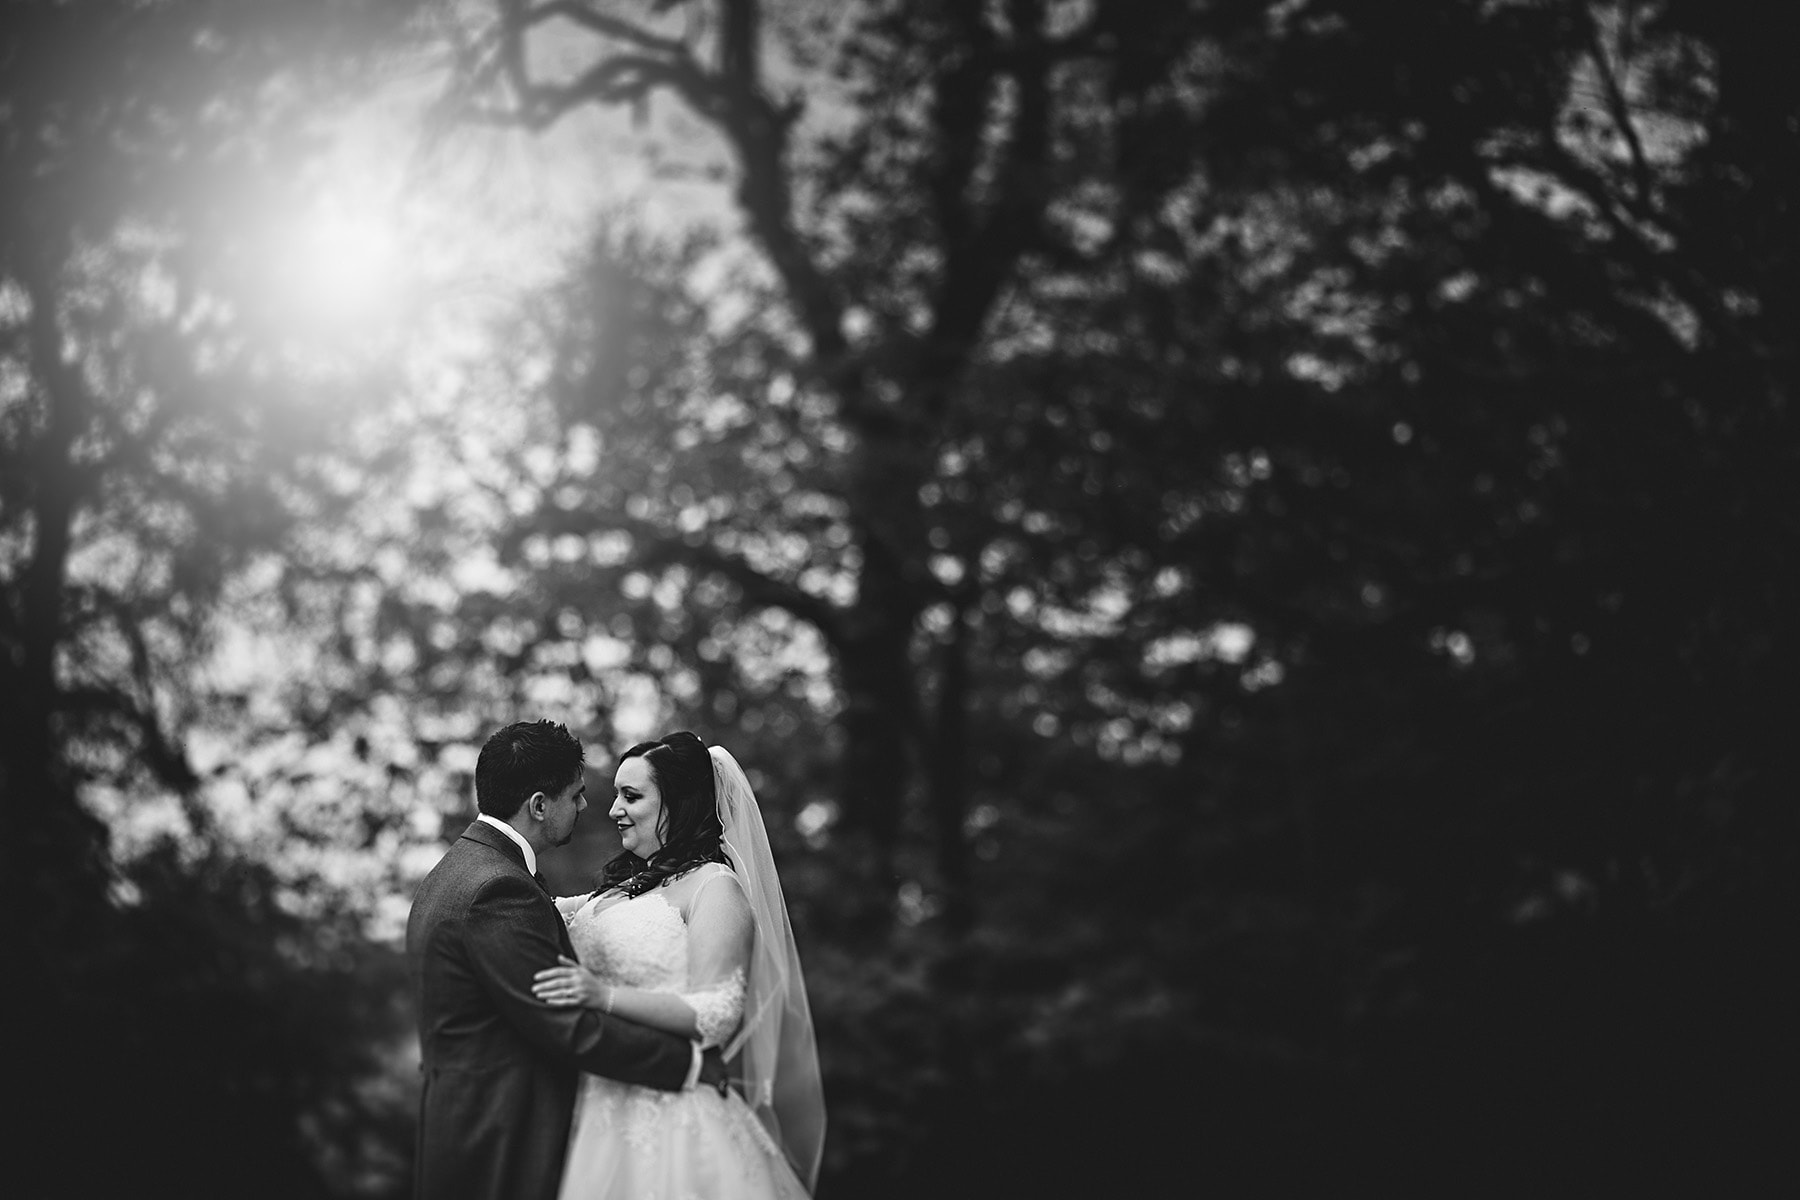 the bride and groom stood in aongst the trees in black and white